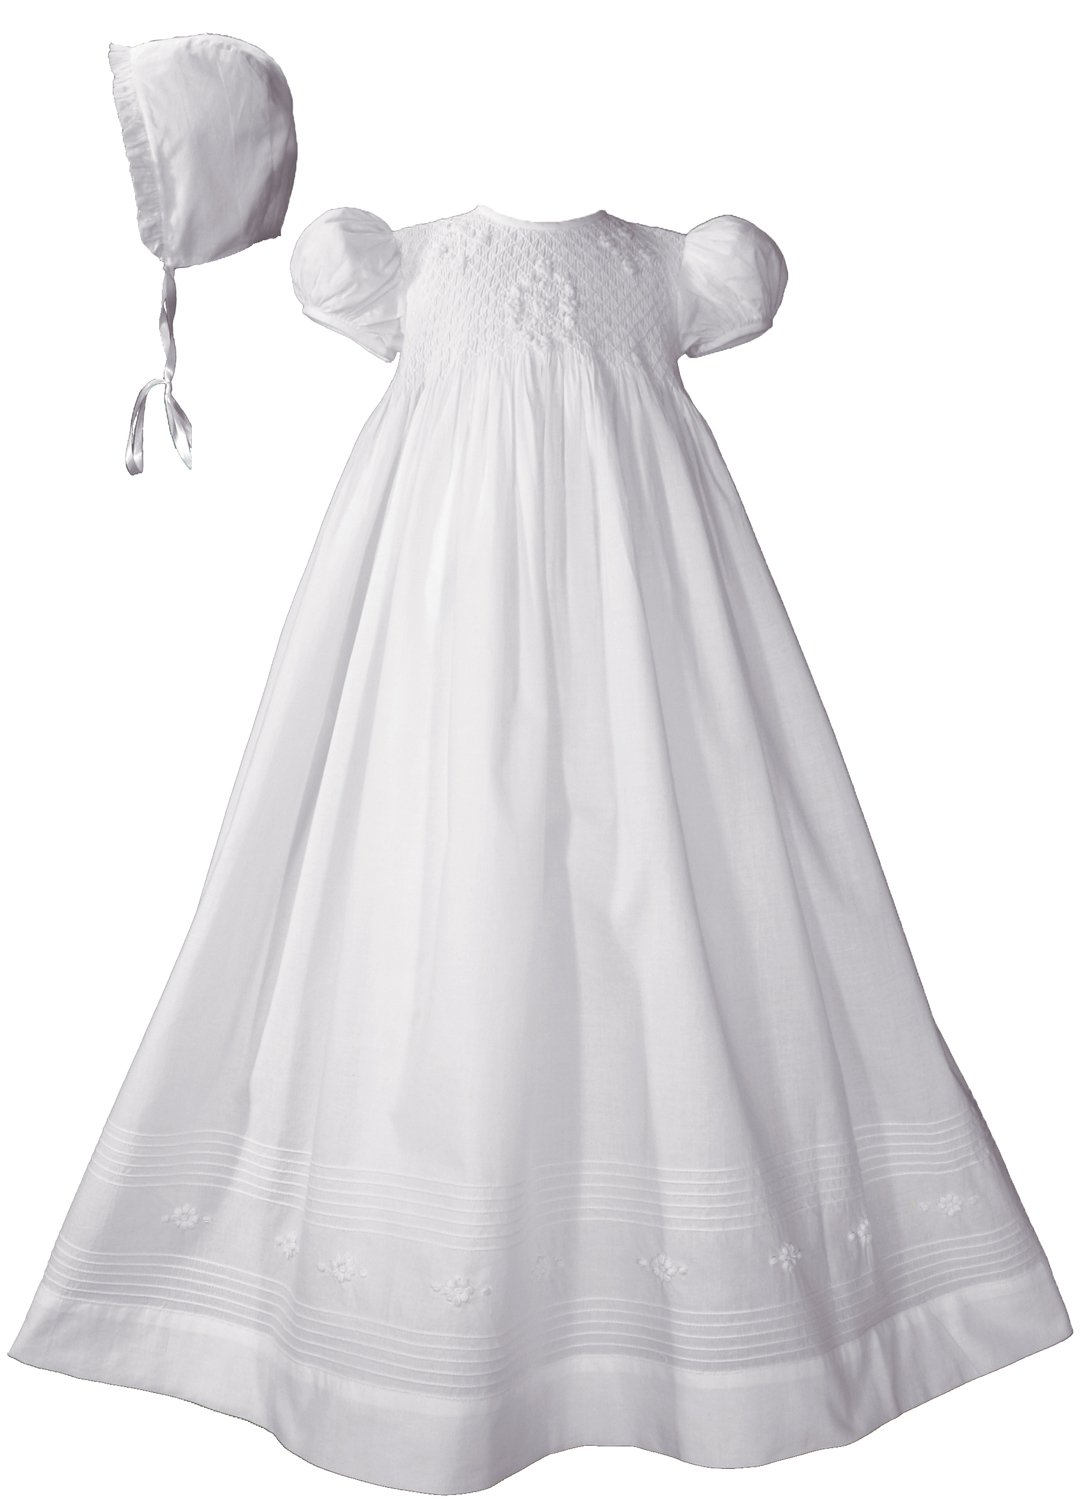 32'' Hand Smocked White Cotton Christening Baptism Gown with Bonnet, LG